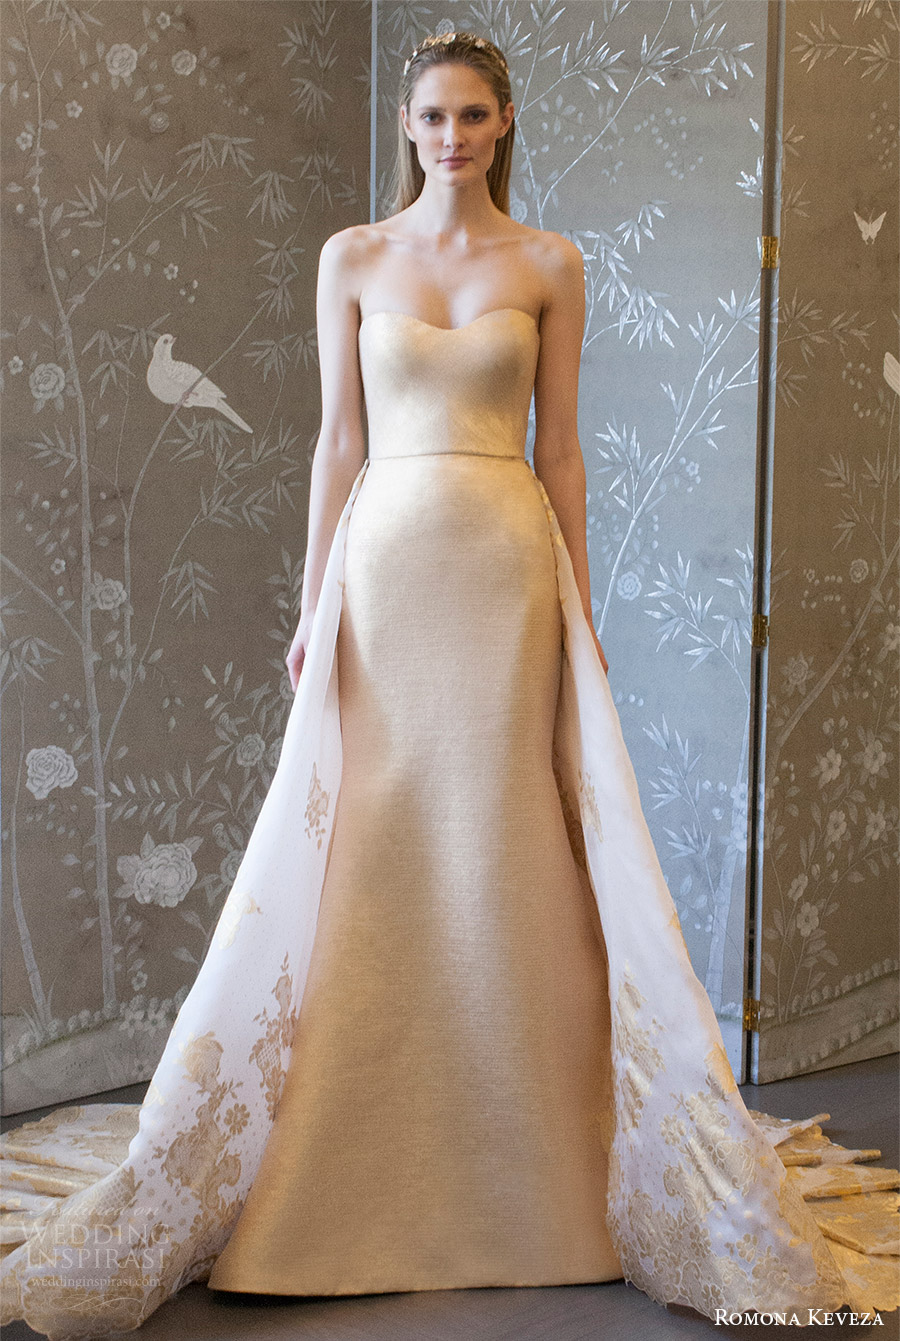 romona keveza spring 2018 bridal strapless sweetheart mermaid wedding dress (rk8410) mv gold color lace a line overskirt chapel train